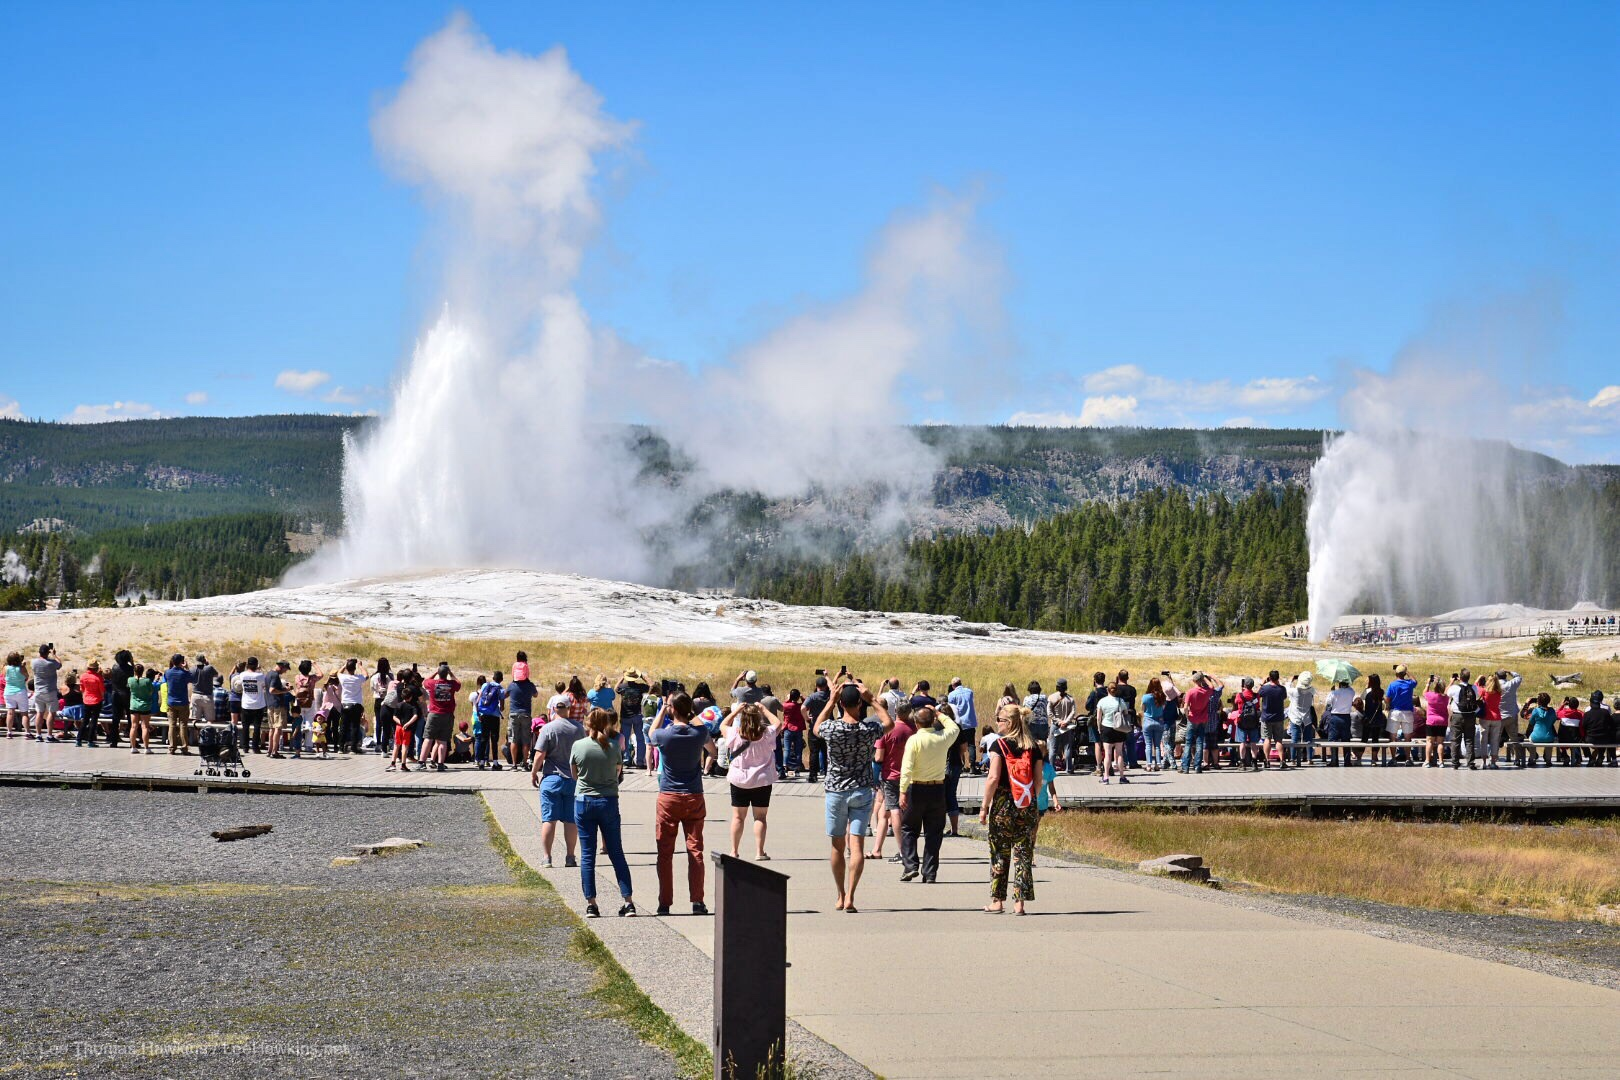 Two large geysers erupt simultaneously, one in the foreground surrounded by a crowd of spectators, and the other in the distance.